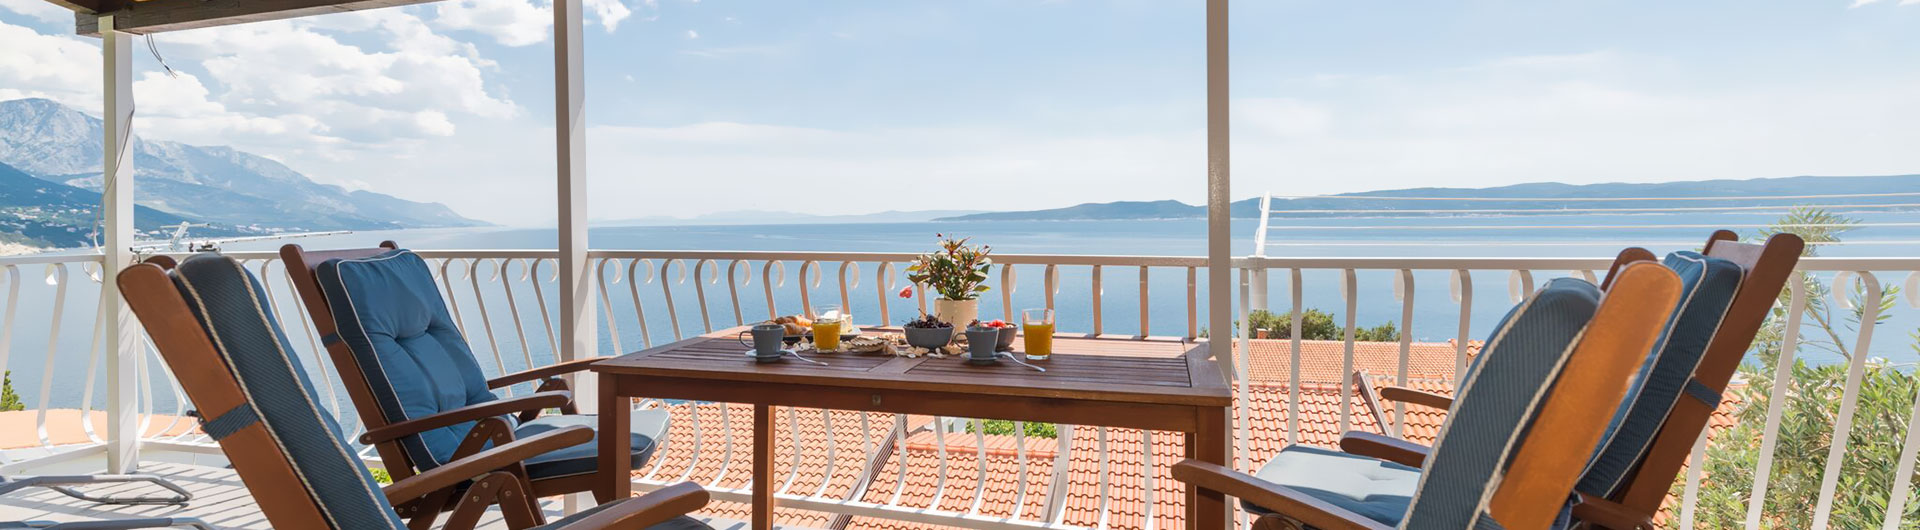 New renovated appartments for rental on Adriatic coast